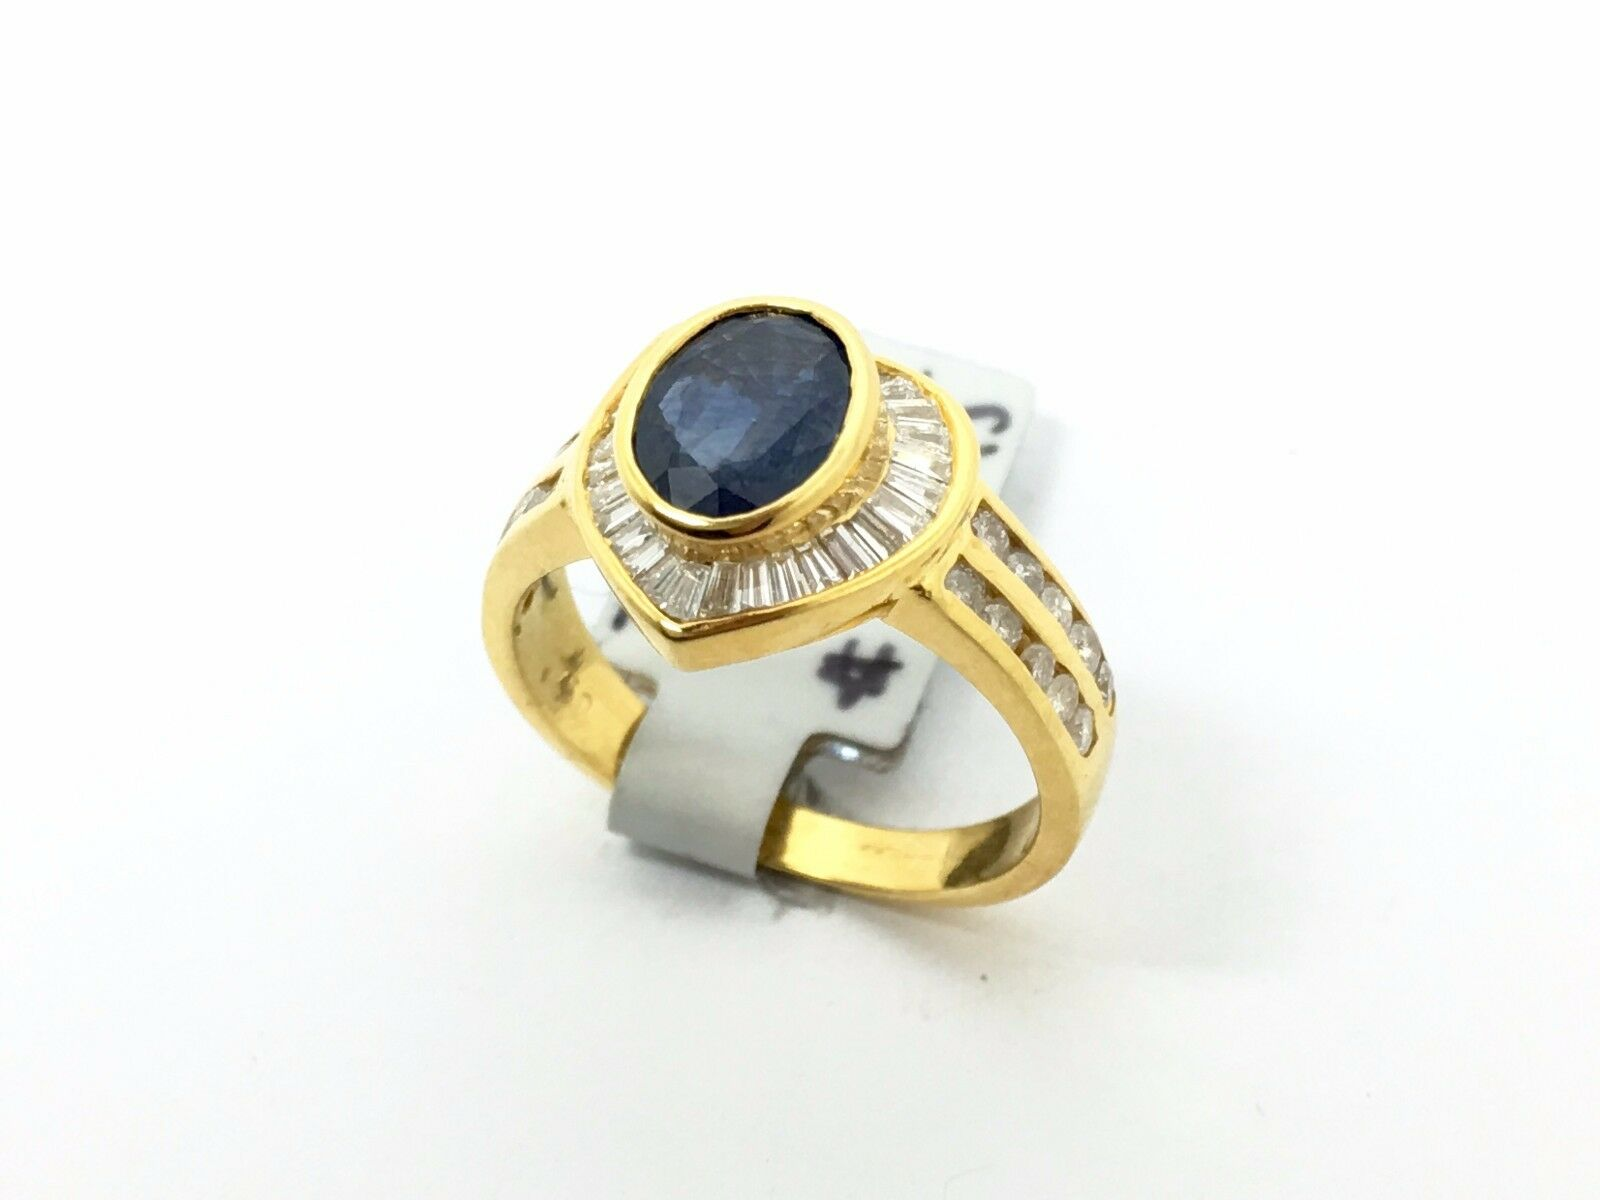 18k Yellow gold Sapphire and Diamond Heart Ring 2.35CTTW Size 6.5 5.07Grams